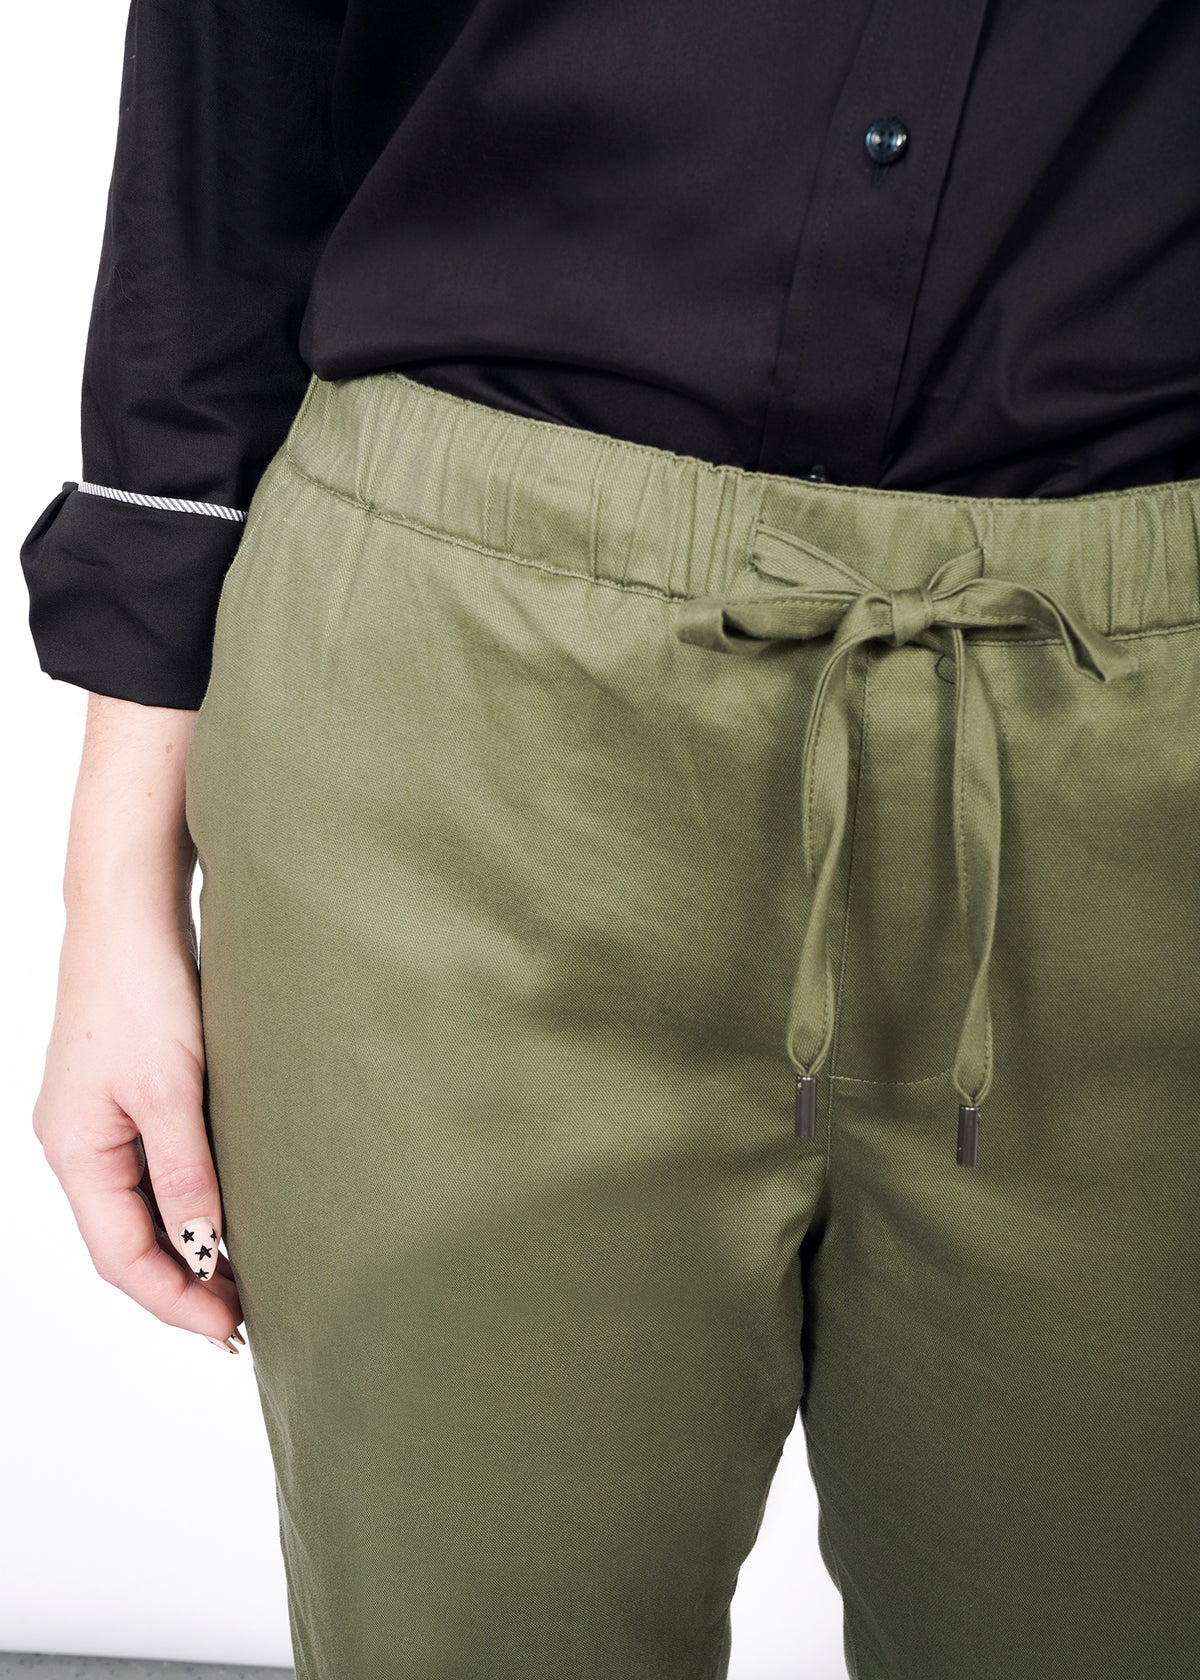 Closeup of waistband and drawstring on olive pants